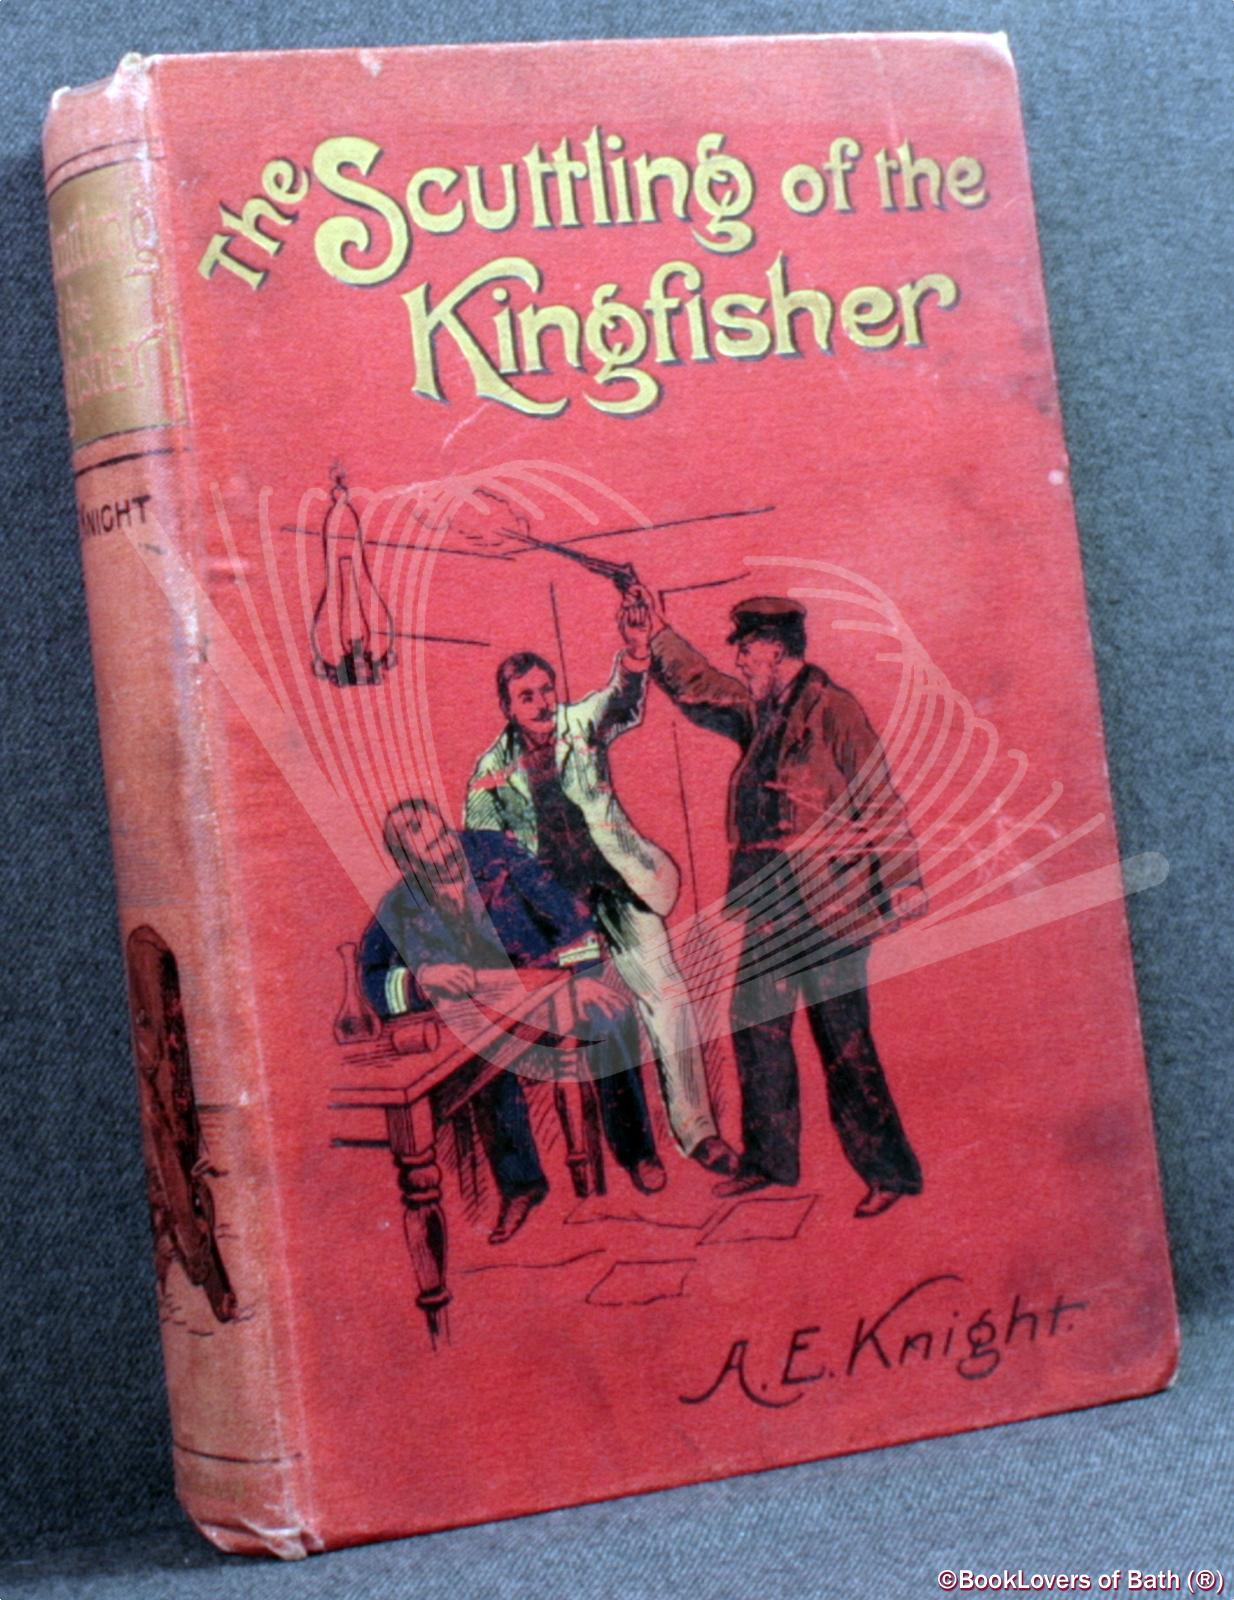 The Scuttling of the Kingfisher - A. E. Knight